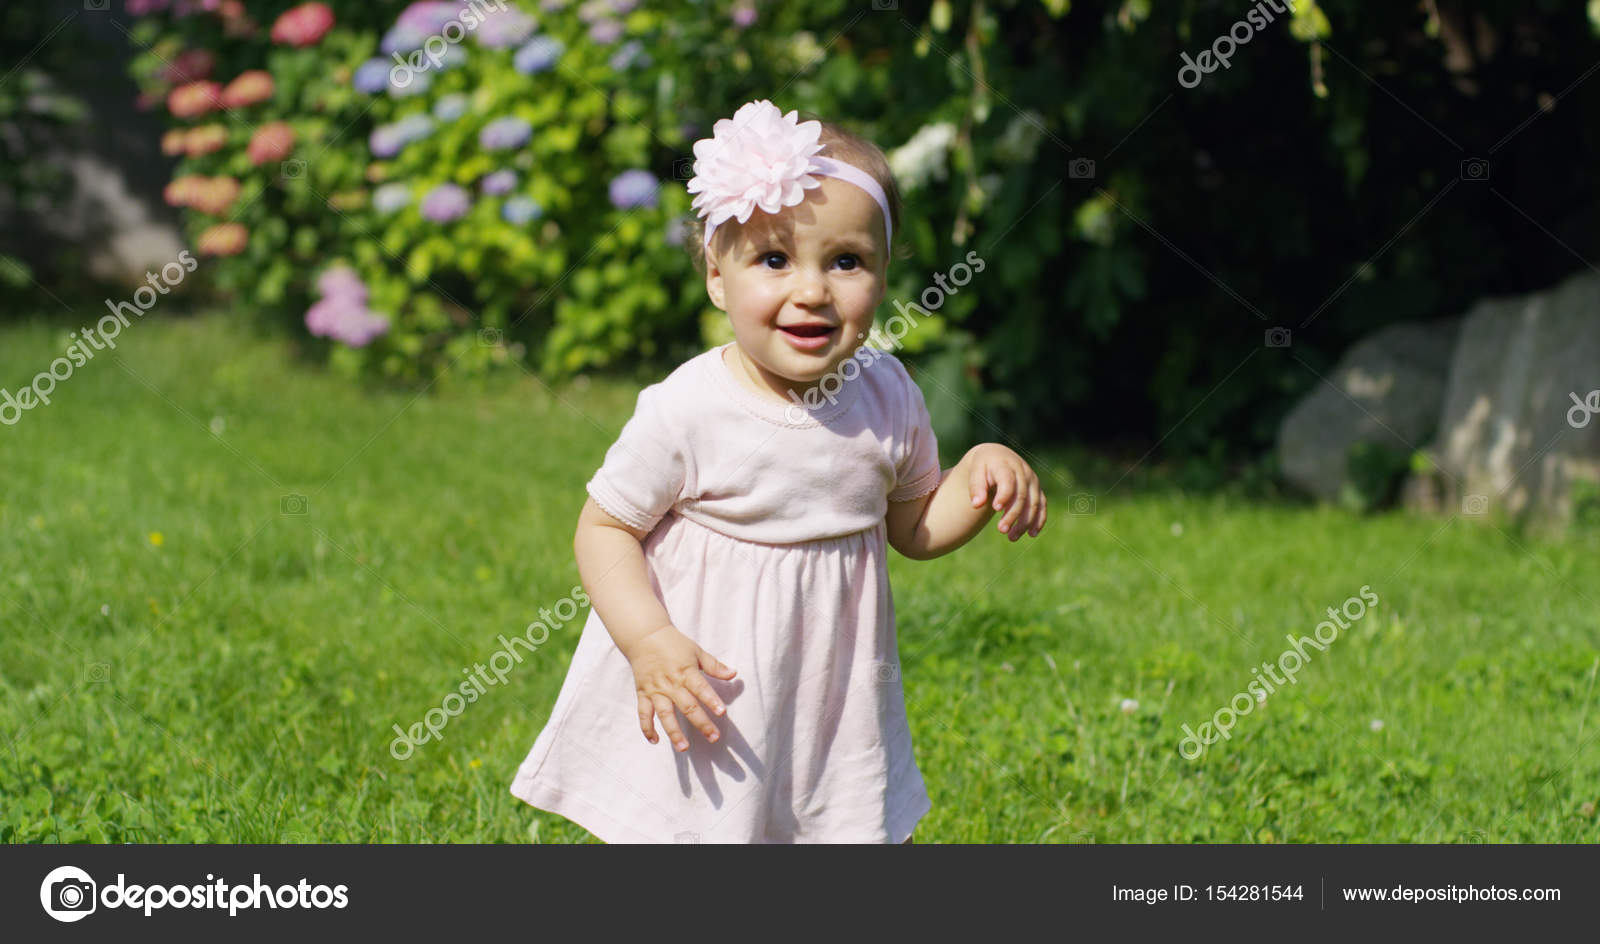 tender newborn baby girl trying to make the first steps in a garden